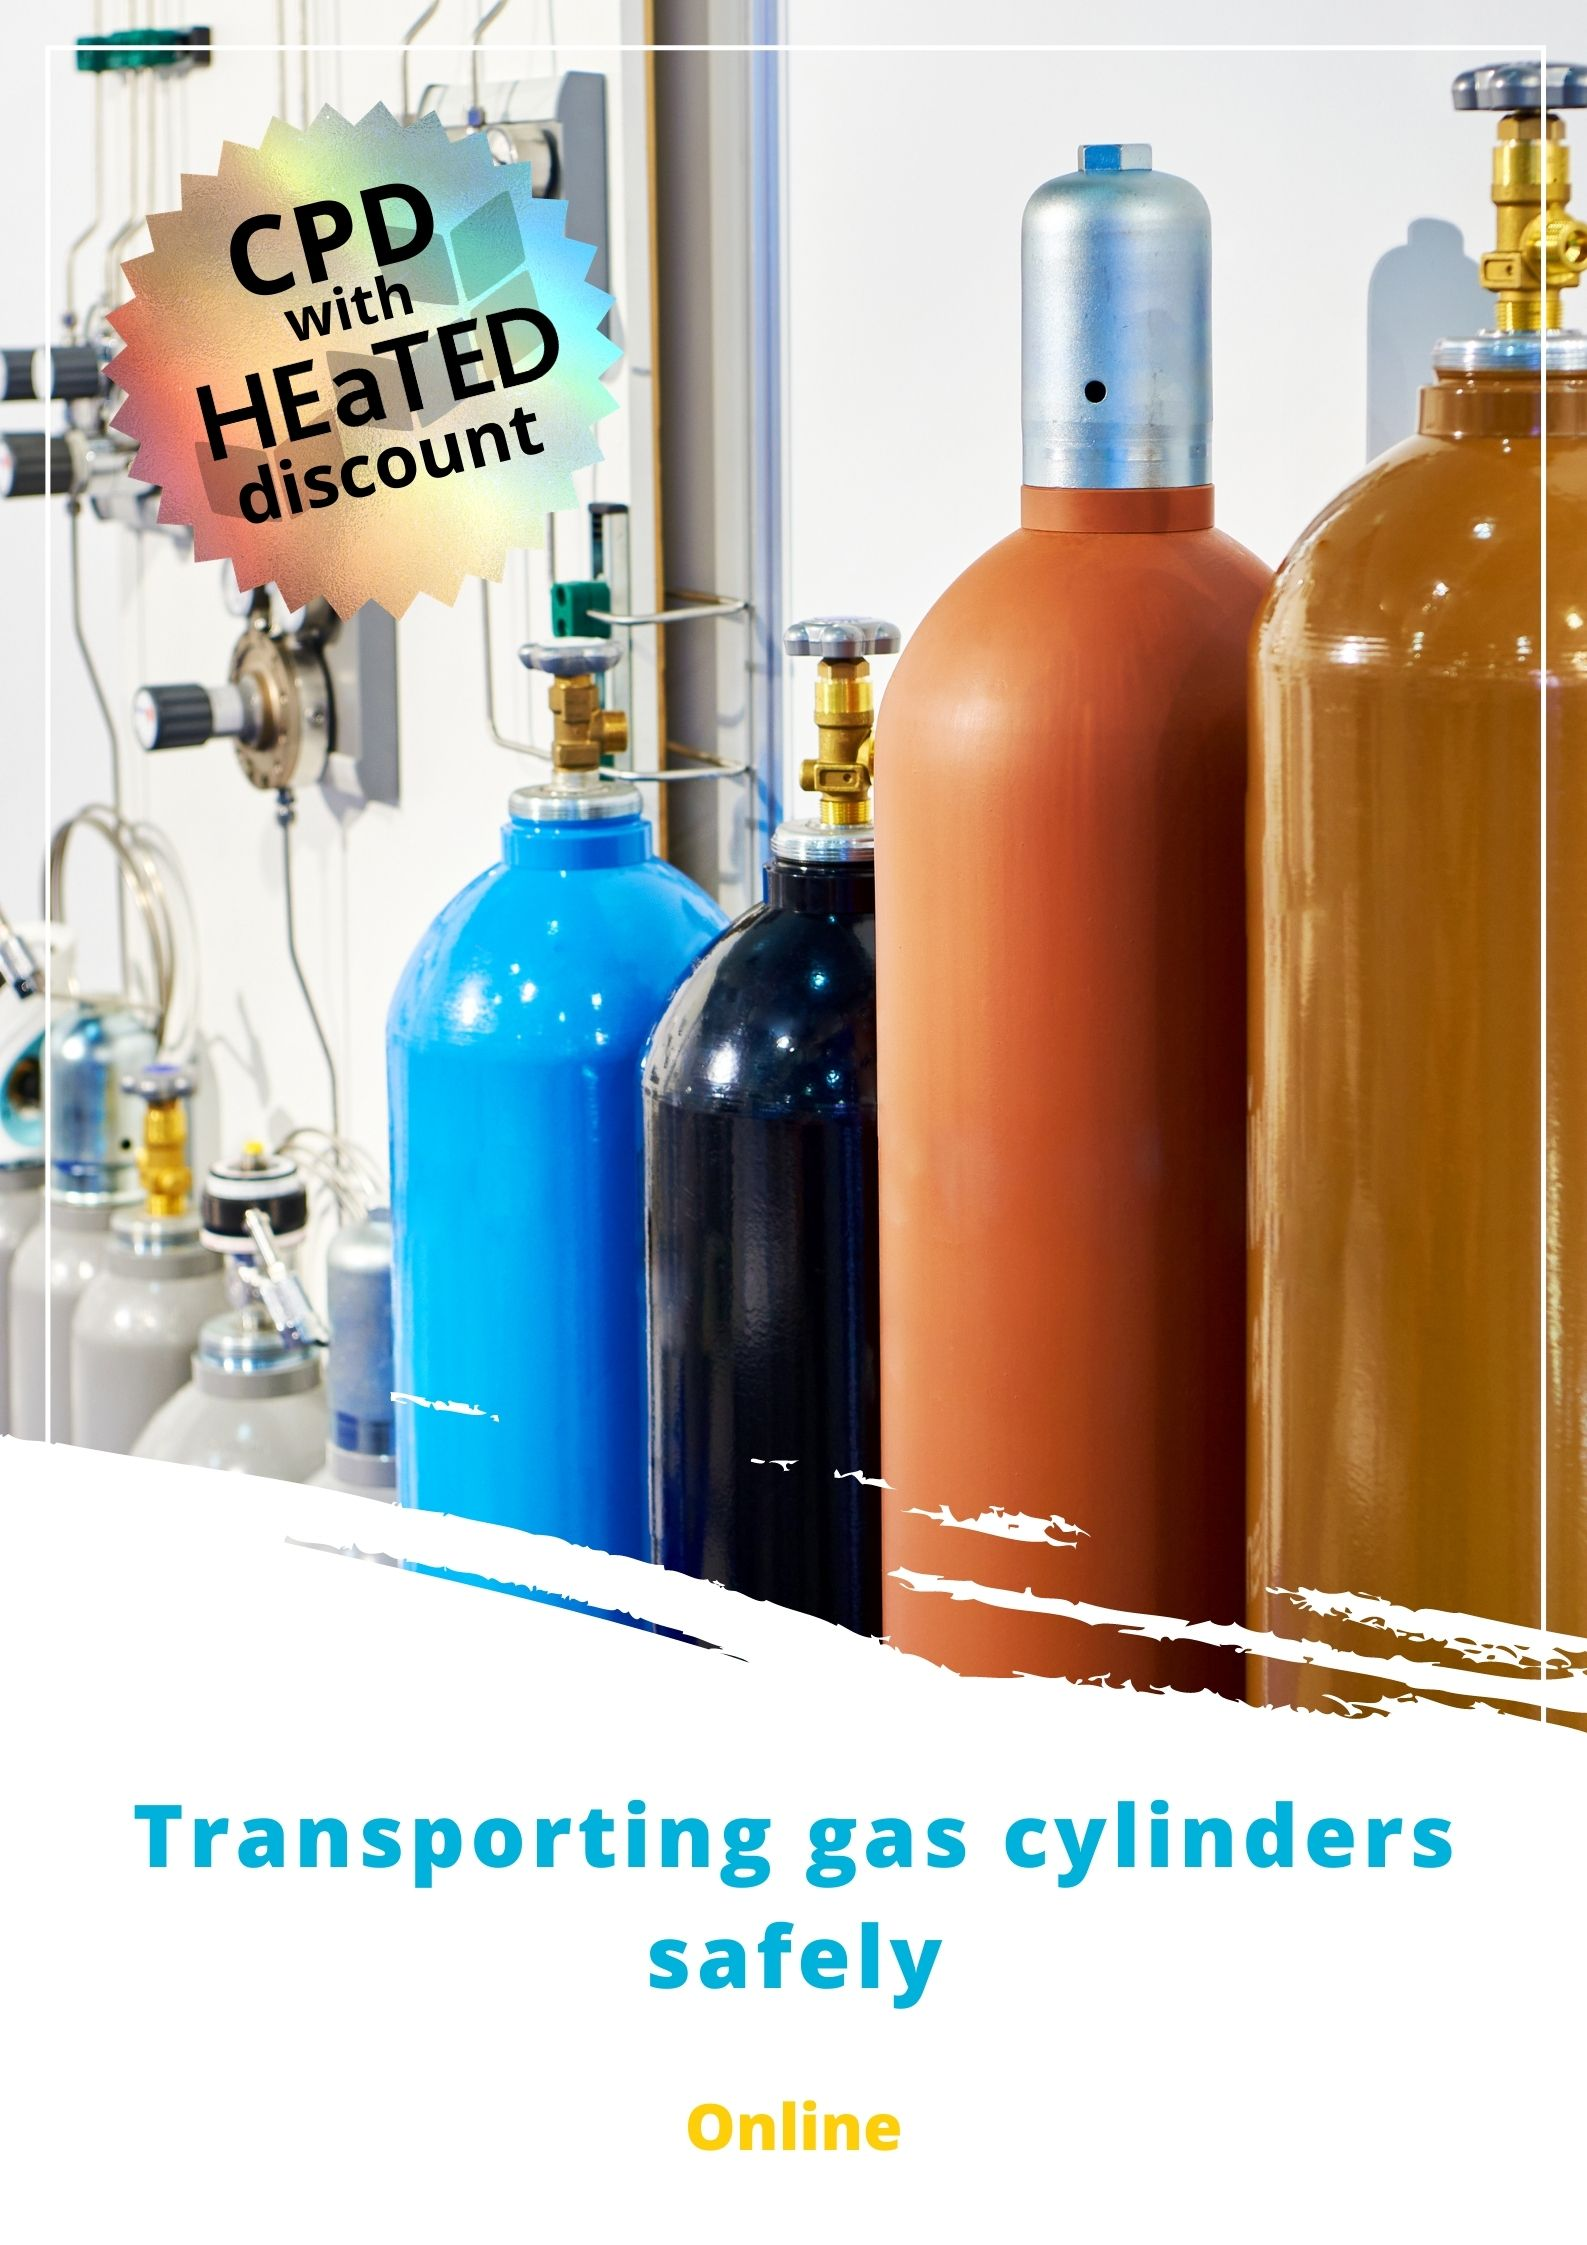 Transporting gas cylinders safely brochure